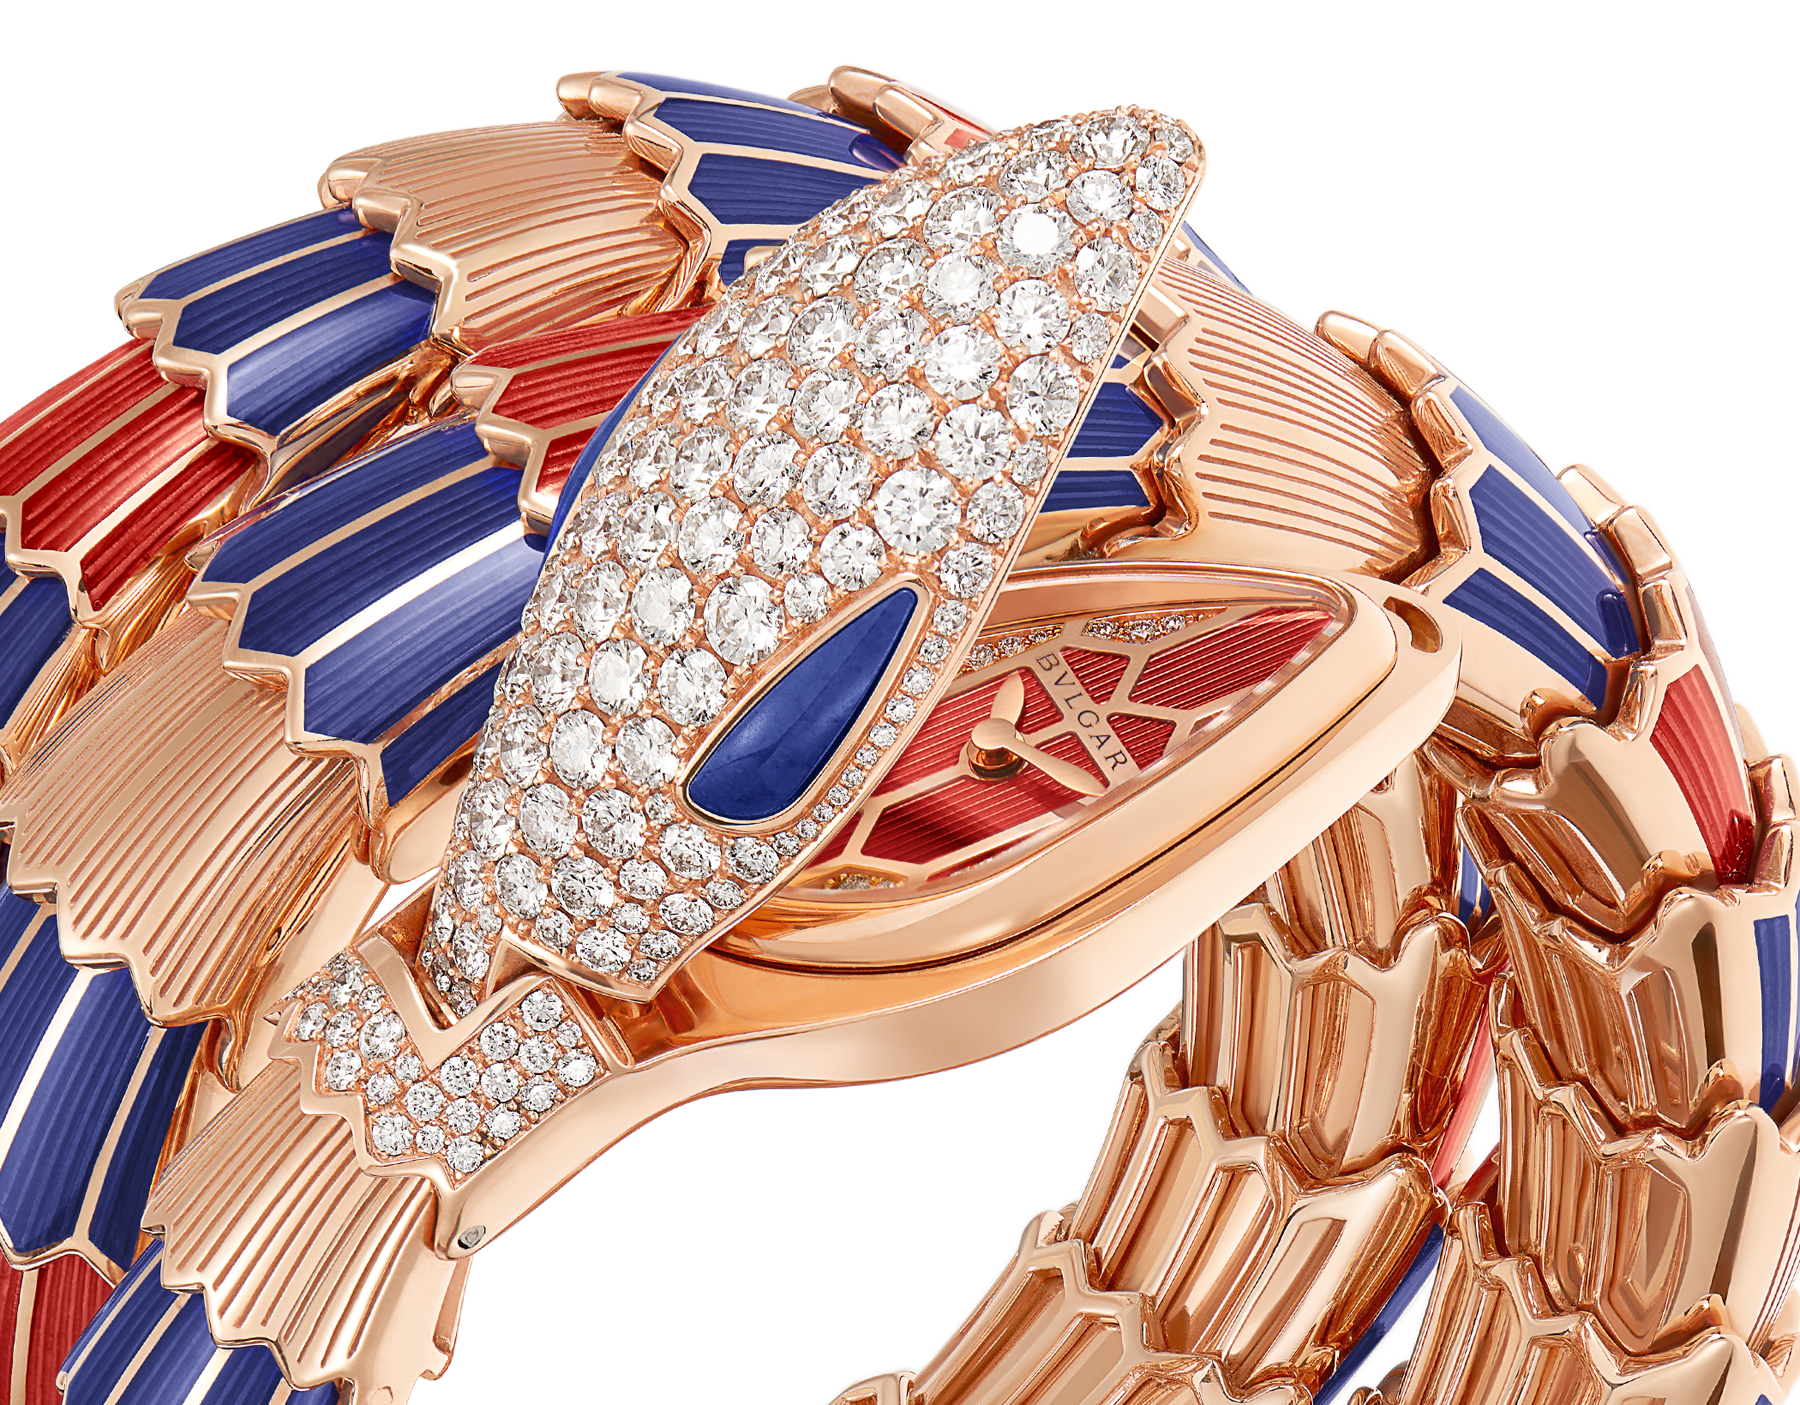 Serpenti Secret Watch with 18 kt rose gold head set with pavé diamonds and lapis lazuli eyes, 18 kt rose gold case, 18 kt rose gold dial set with brilliant cut diamonds, 18 kt rose gold double spiral bracelet coated with blue and red lacquer and set with pavé diamonds. 102445 image 2